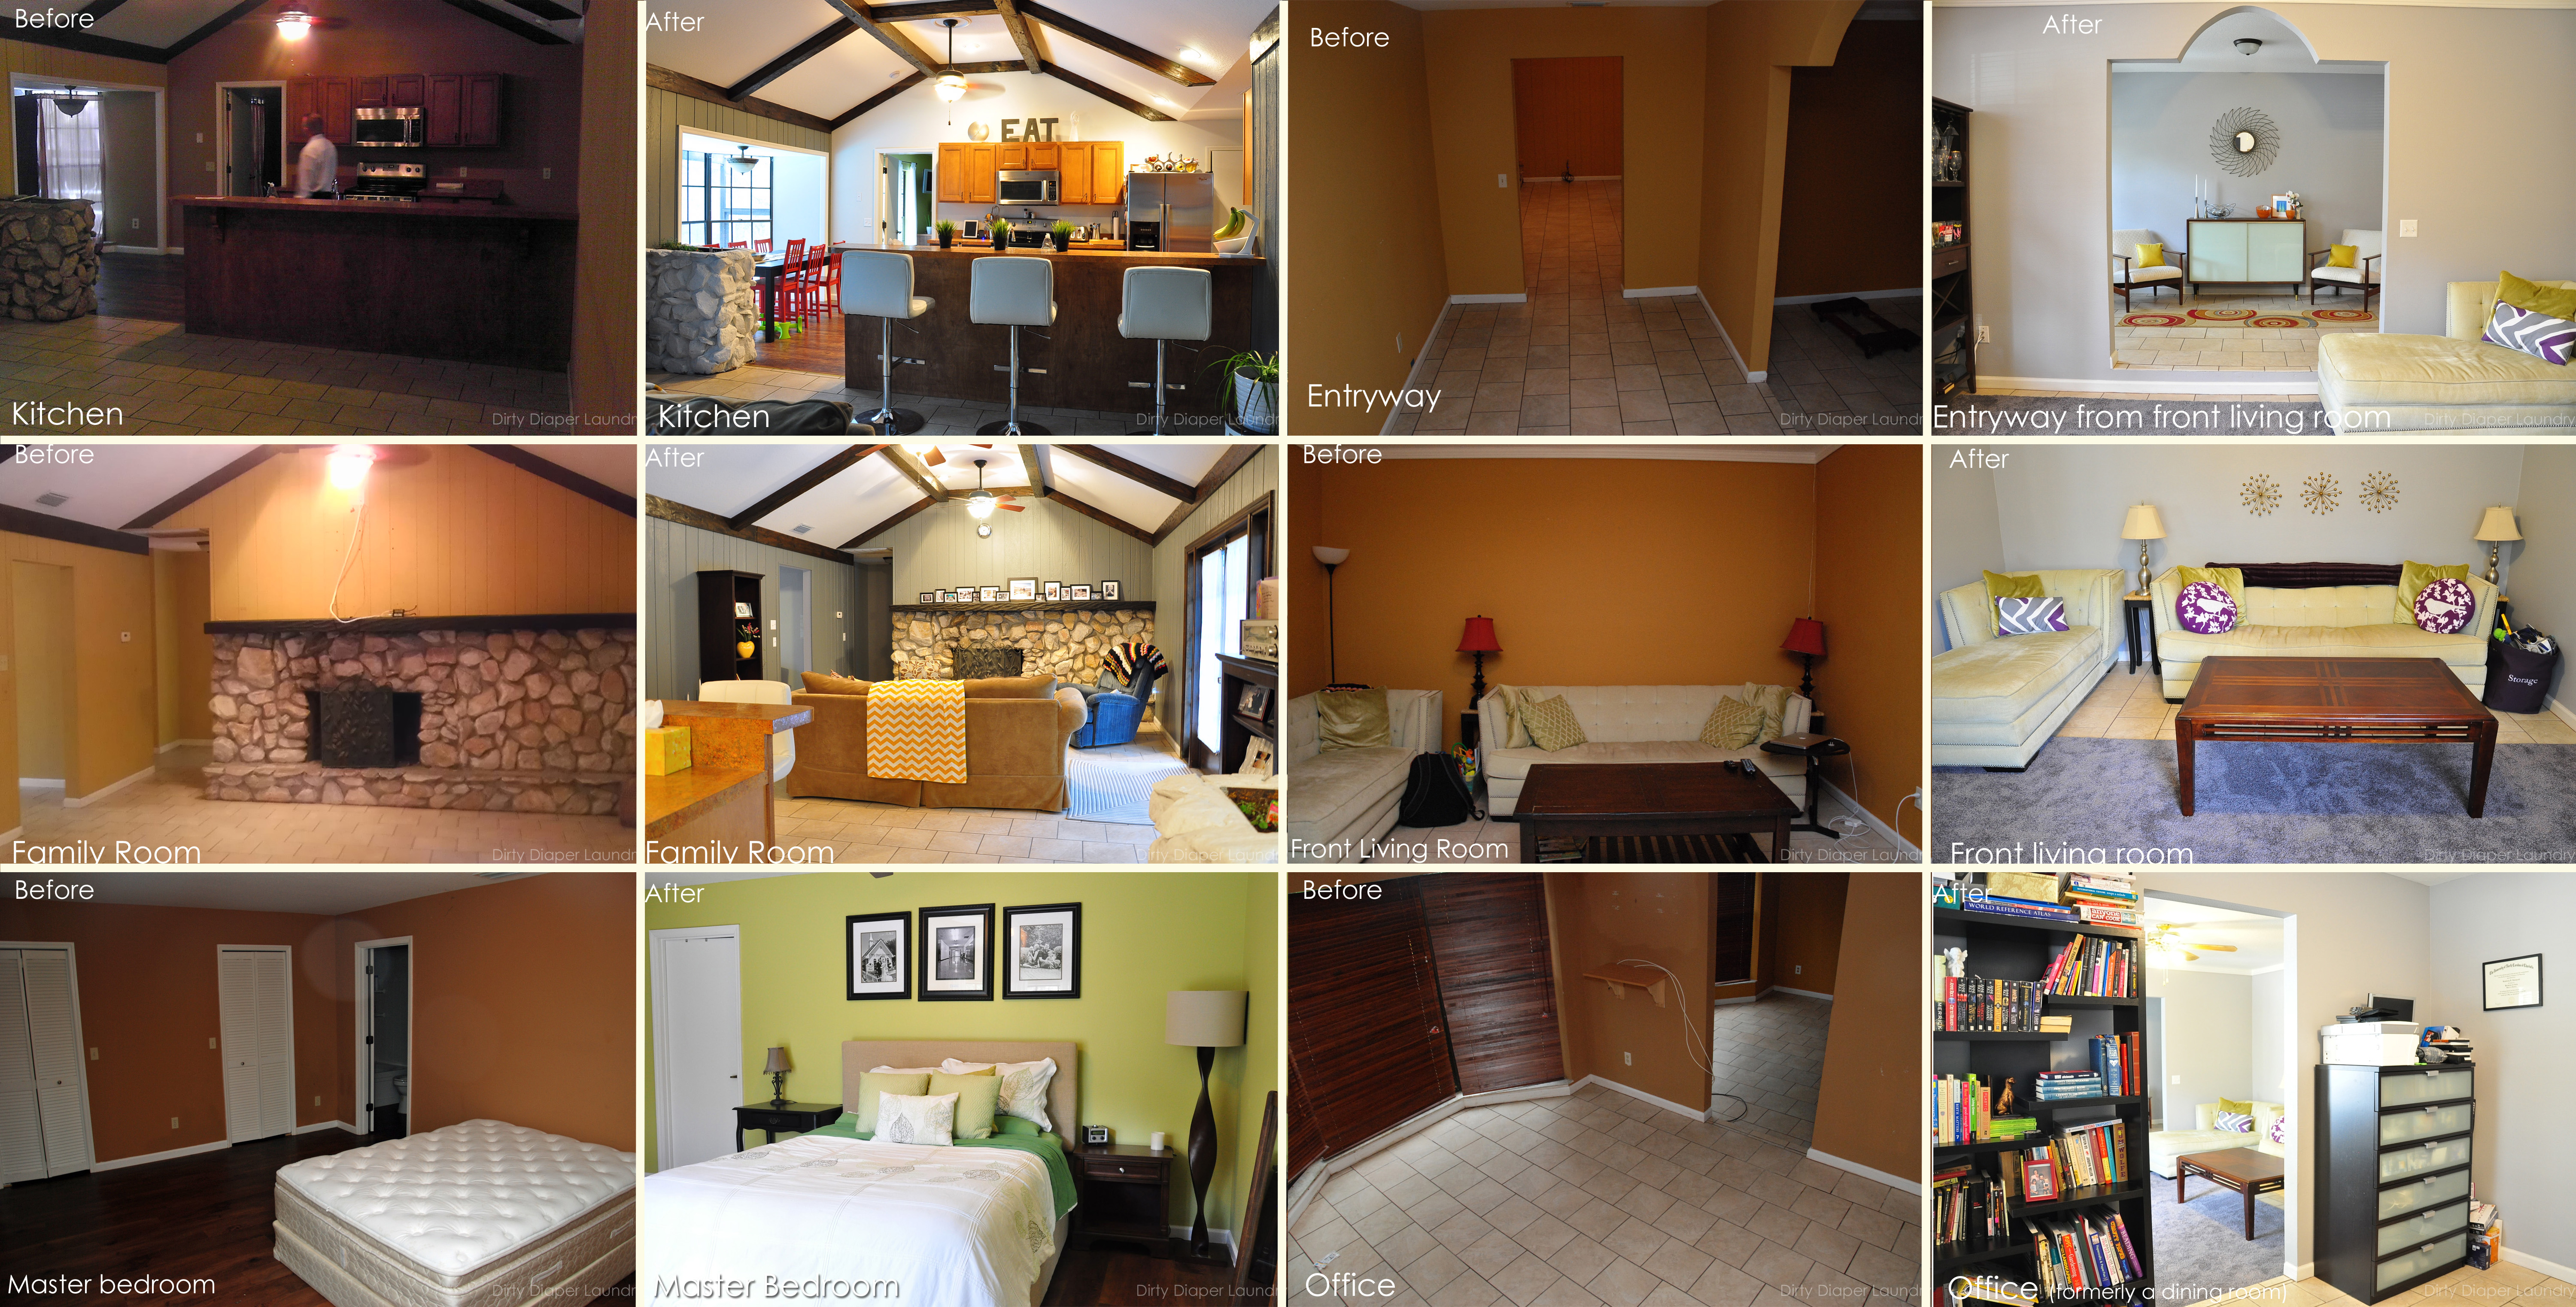 Before and After Rooms